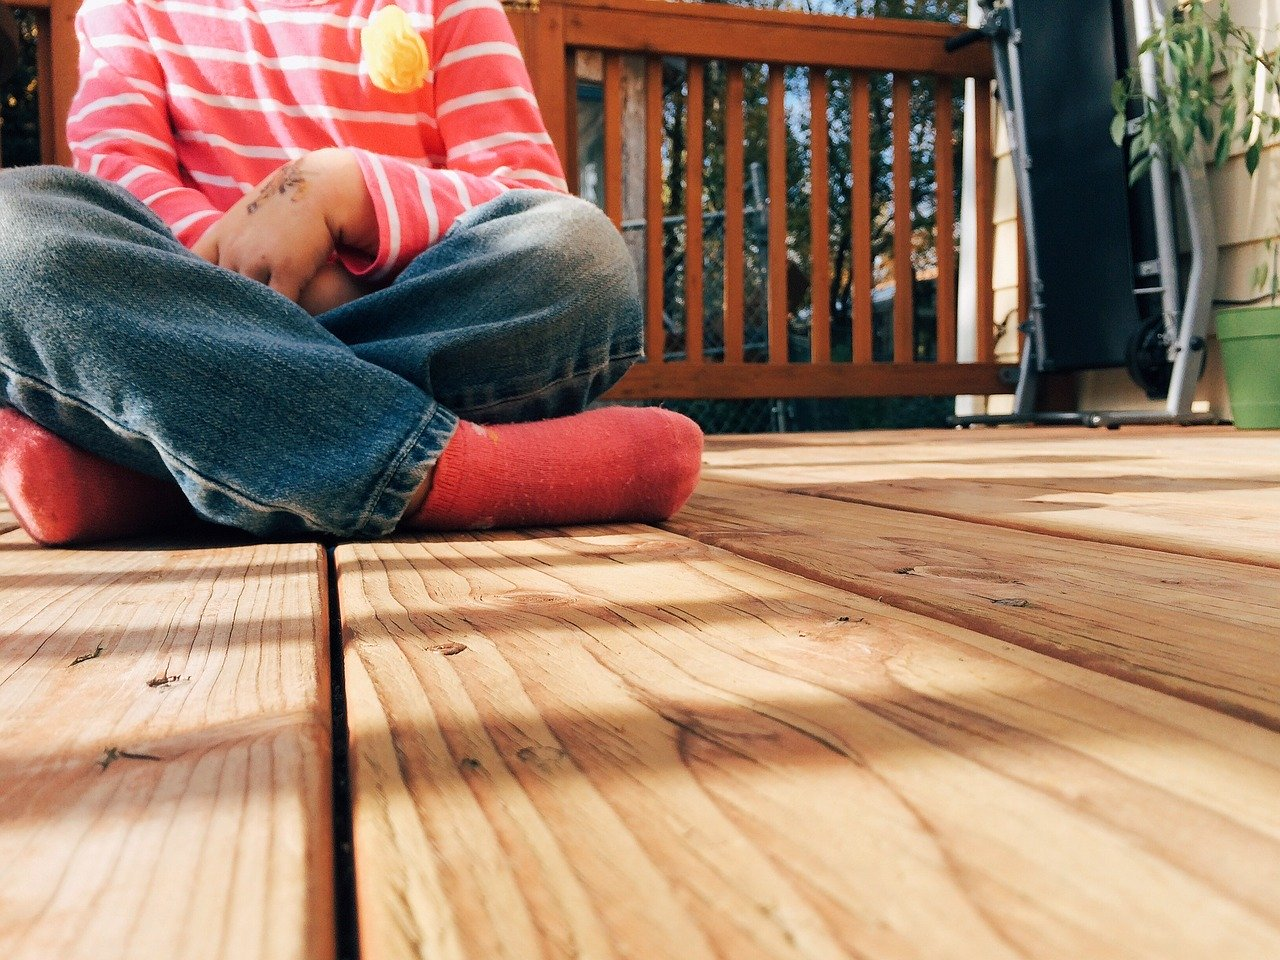 Picture of Child Sitting on Deck